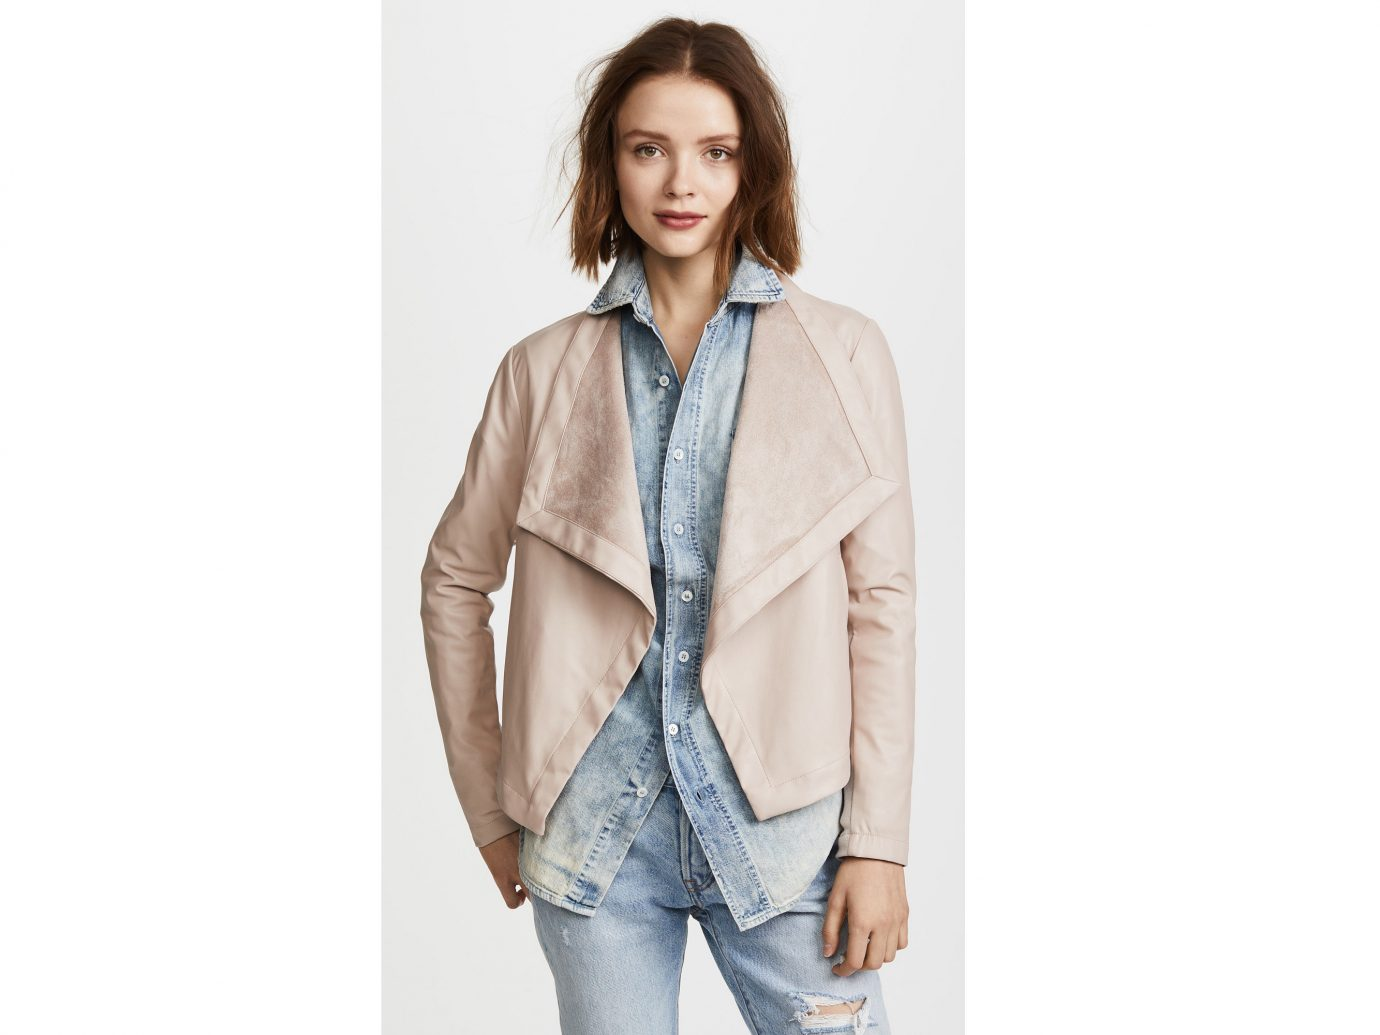 Austria europe Hotels Vienna person clothing posing standing suit wearing fashion model outerwear jacket blazer denim formal wear sleeve neck dressed trouser tan